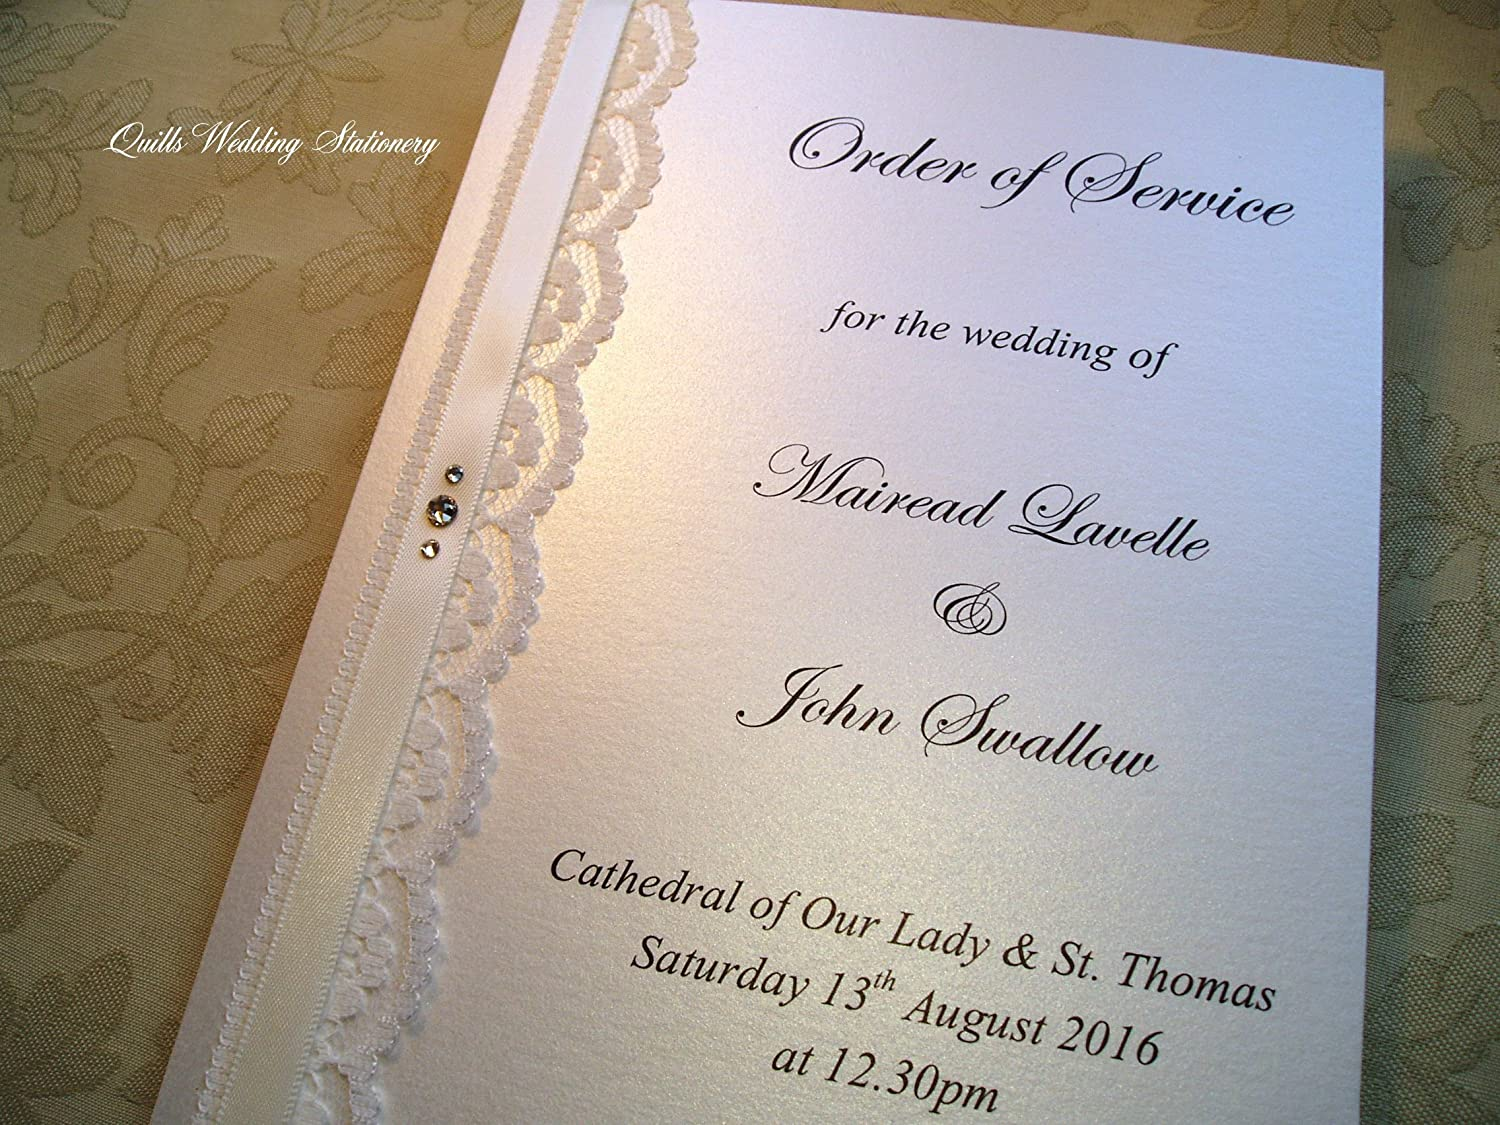 Order Of Service For Weddings Vintage Style Wedding Ceremony Booklet Decorated With Lace Satin Ribbon Swarovski Crystals Amazon Co Uk Handmade